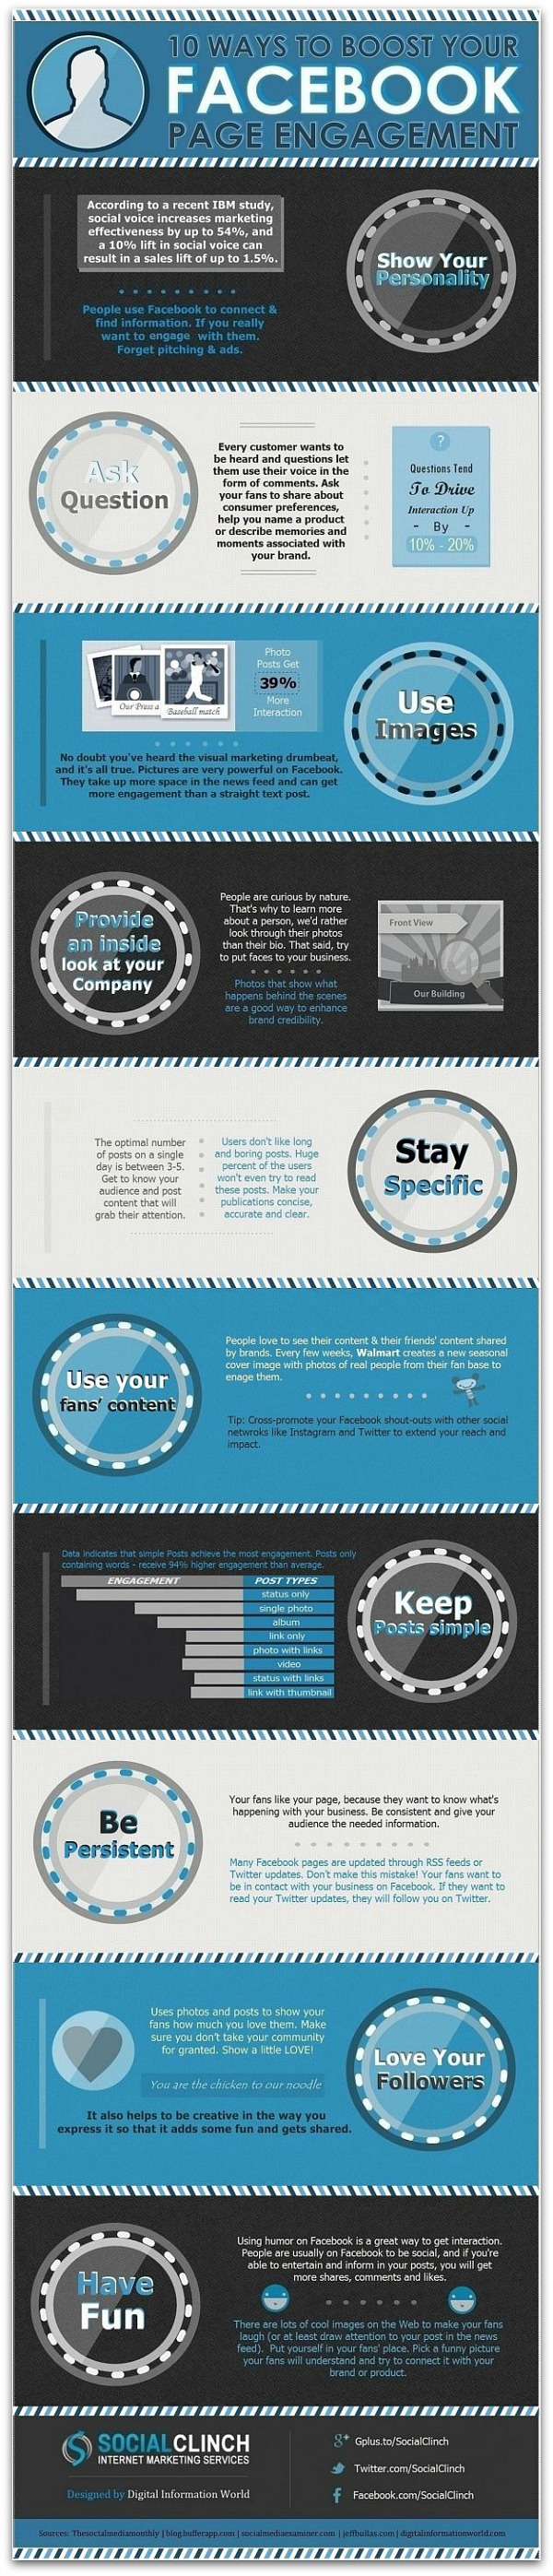 Boost_Facebook_Engagement_Infographic-2